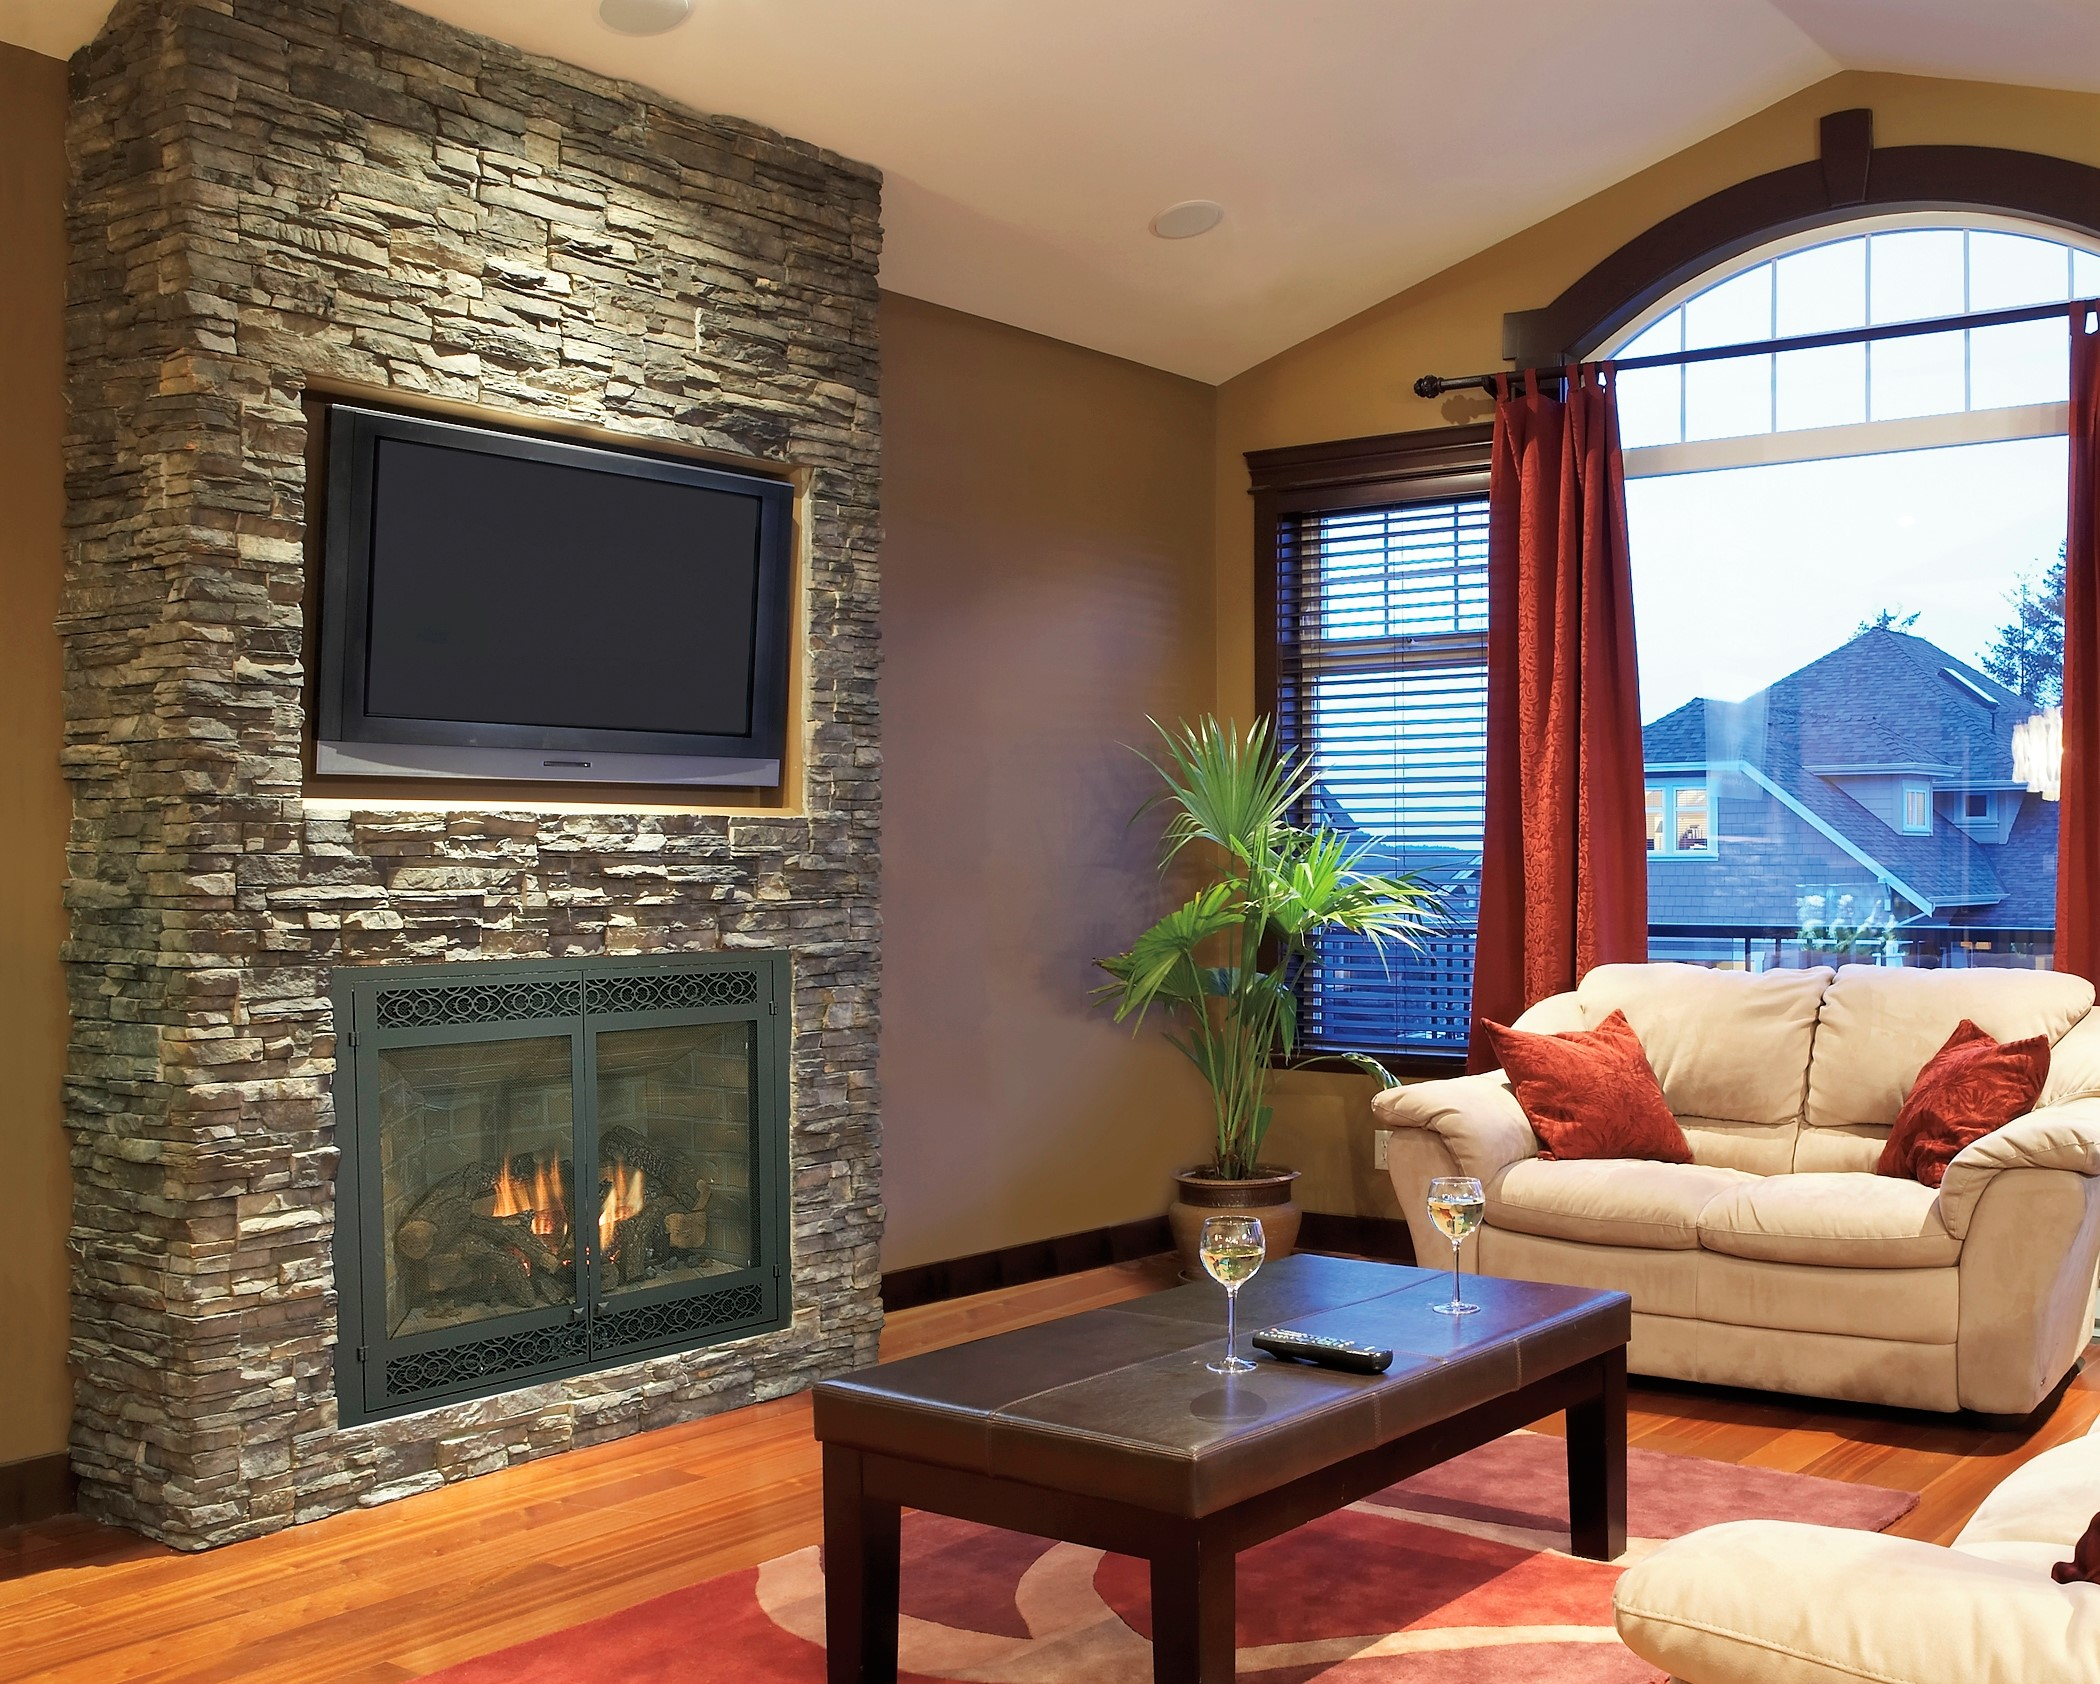 Living area stone fireplace surround hardwood floors carpet area rug.JPG